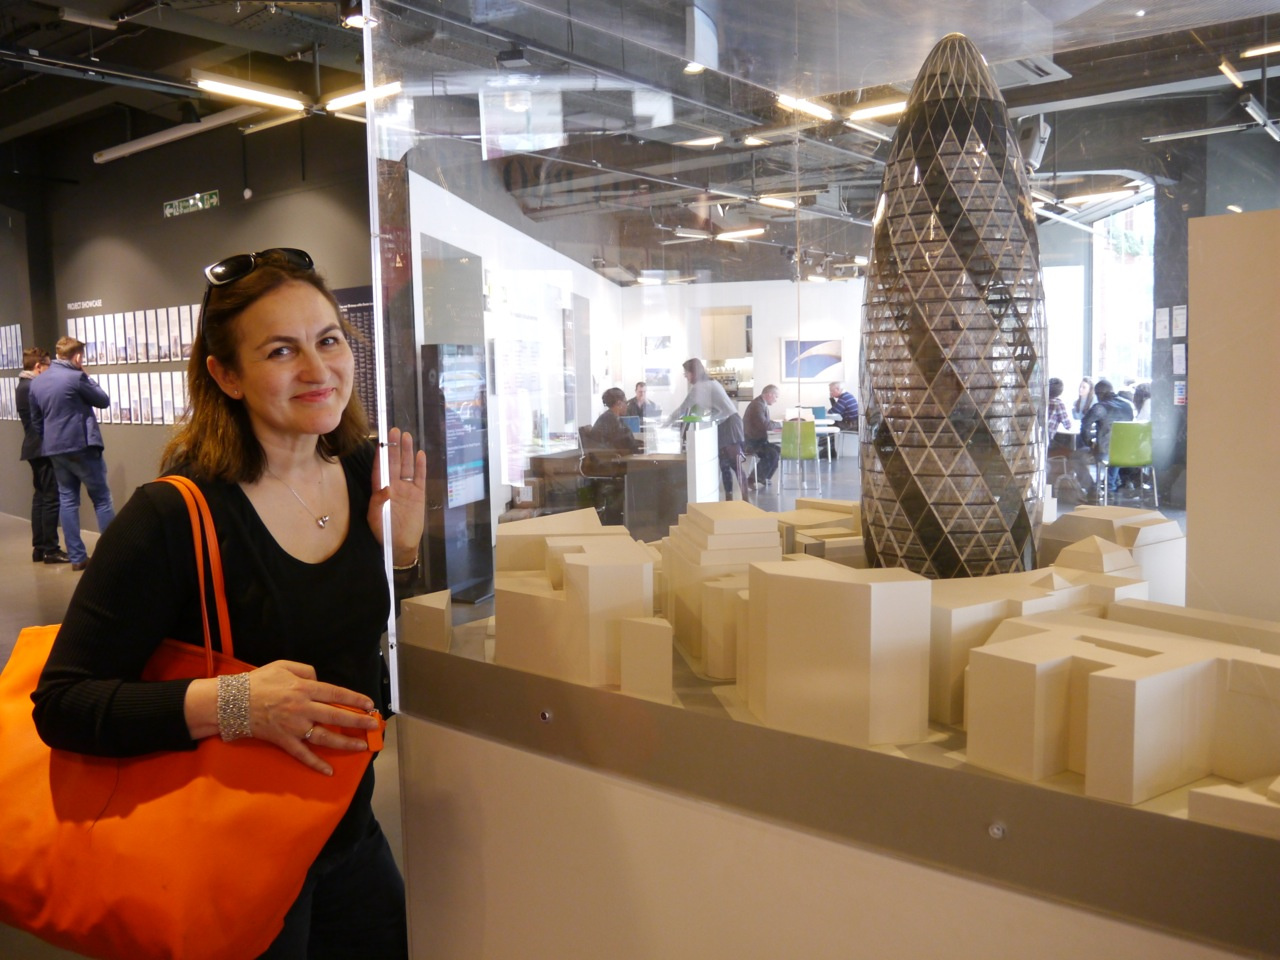 The model of the Gherkin is on display in the NLA's fantastic 'London's Growing Up' exhibition.